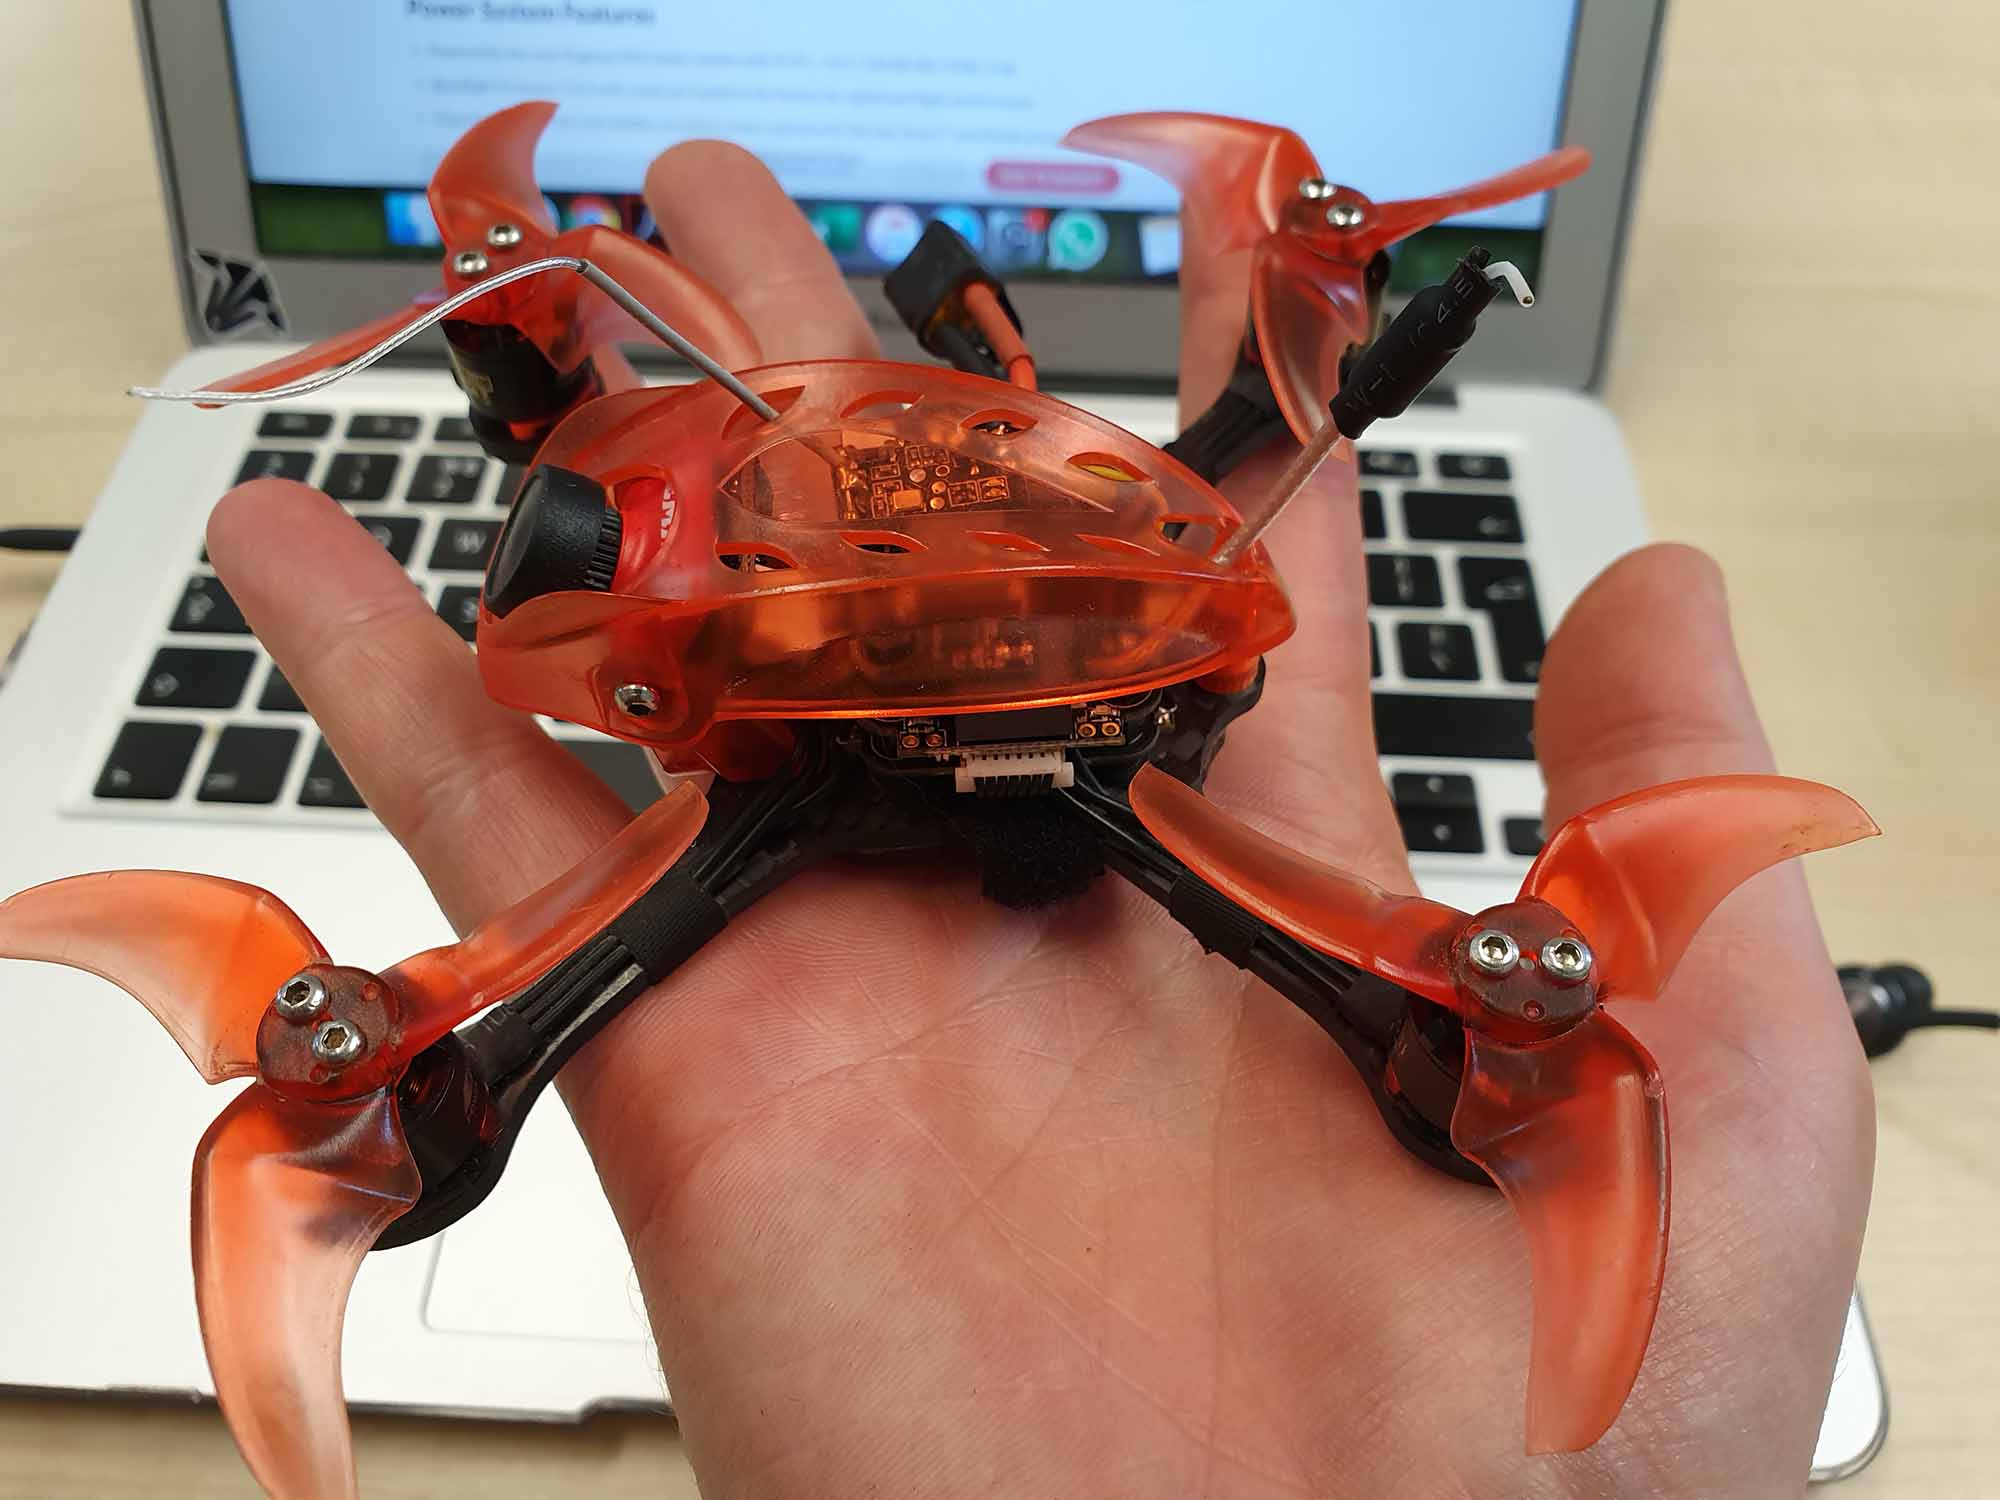 Racing drone under 250 g